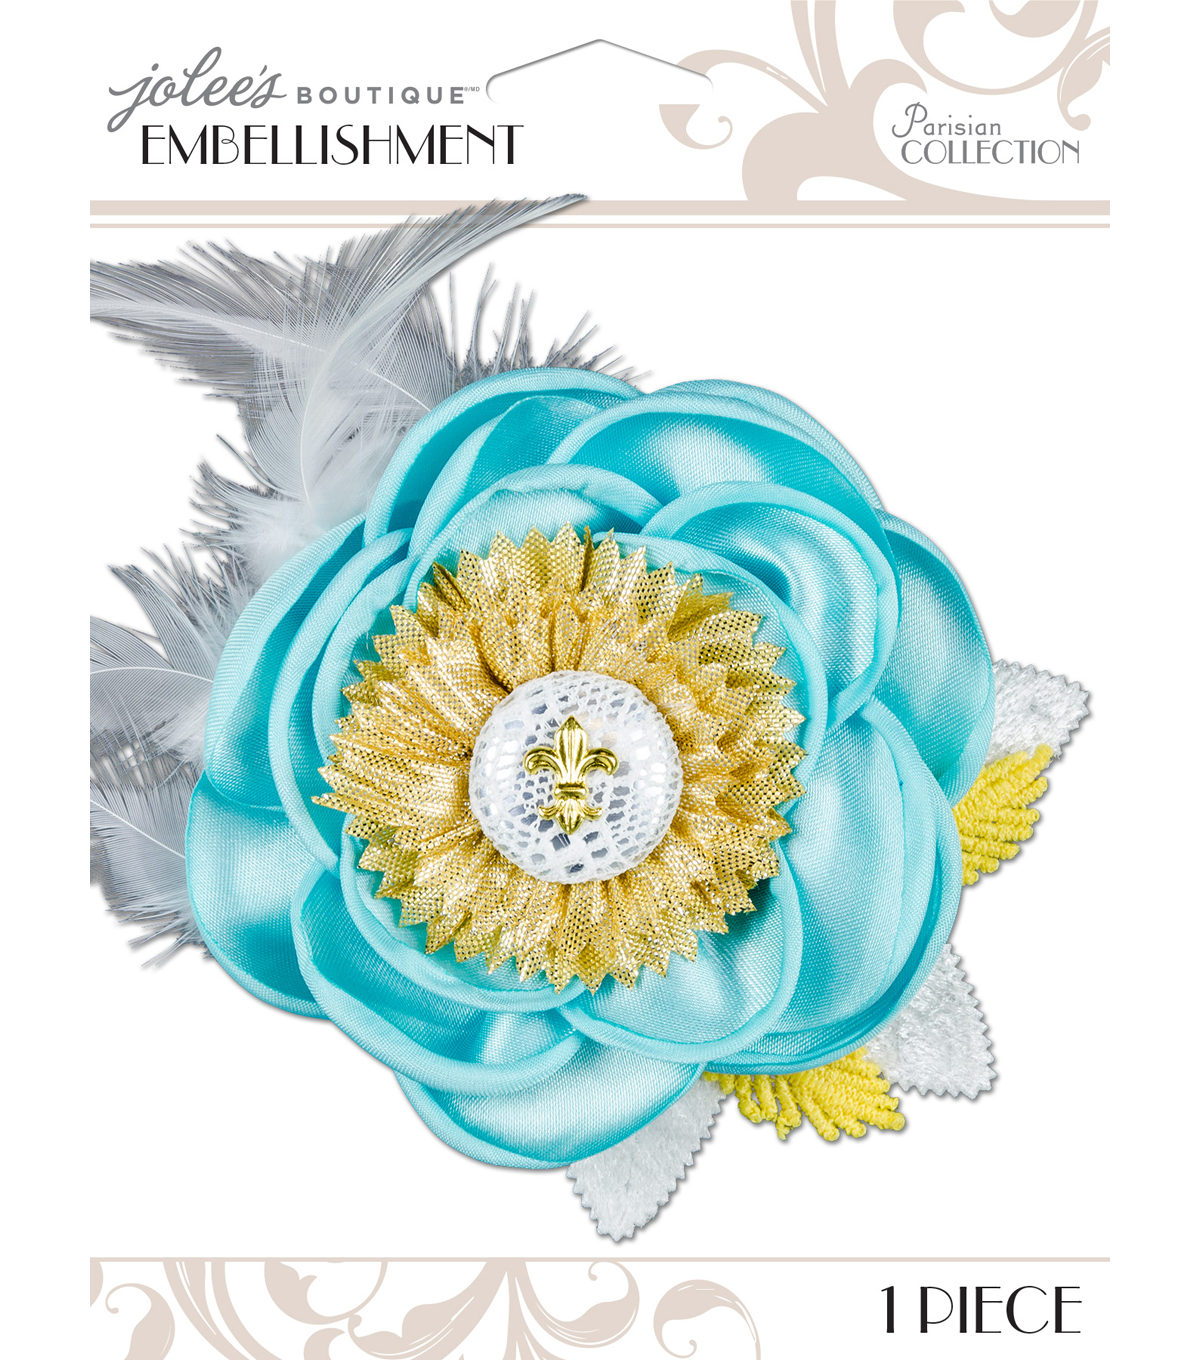 Jolee\u0027s Boutique Parisian Soft Blue Embellished Flower